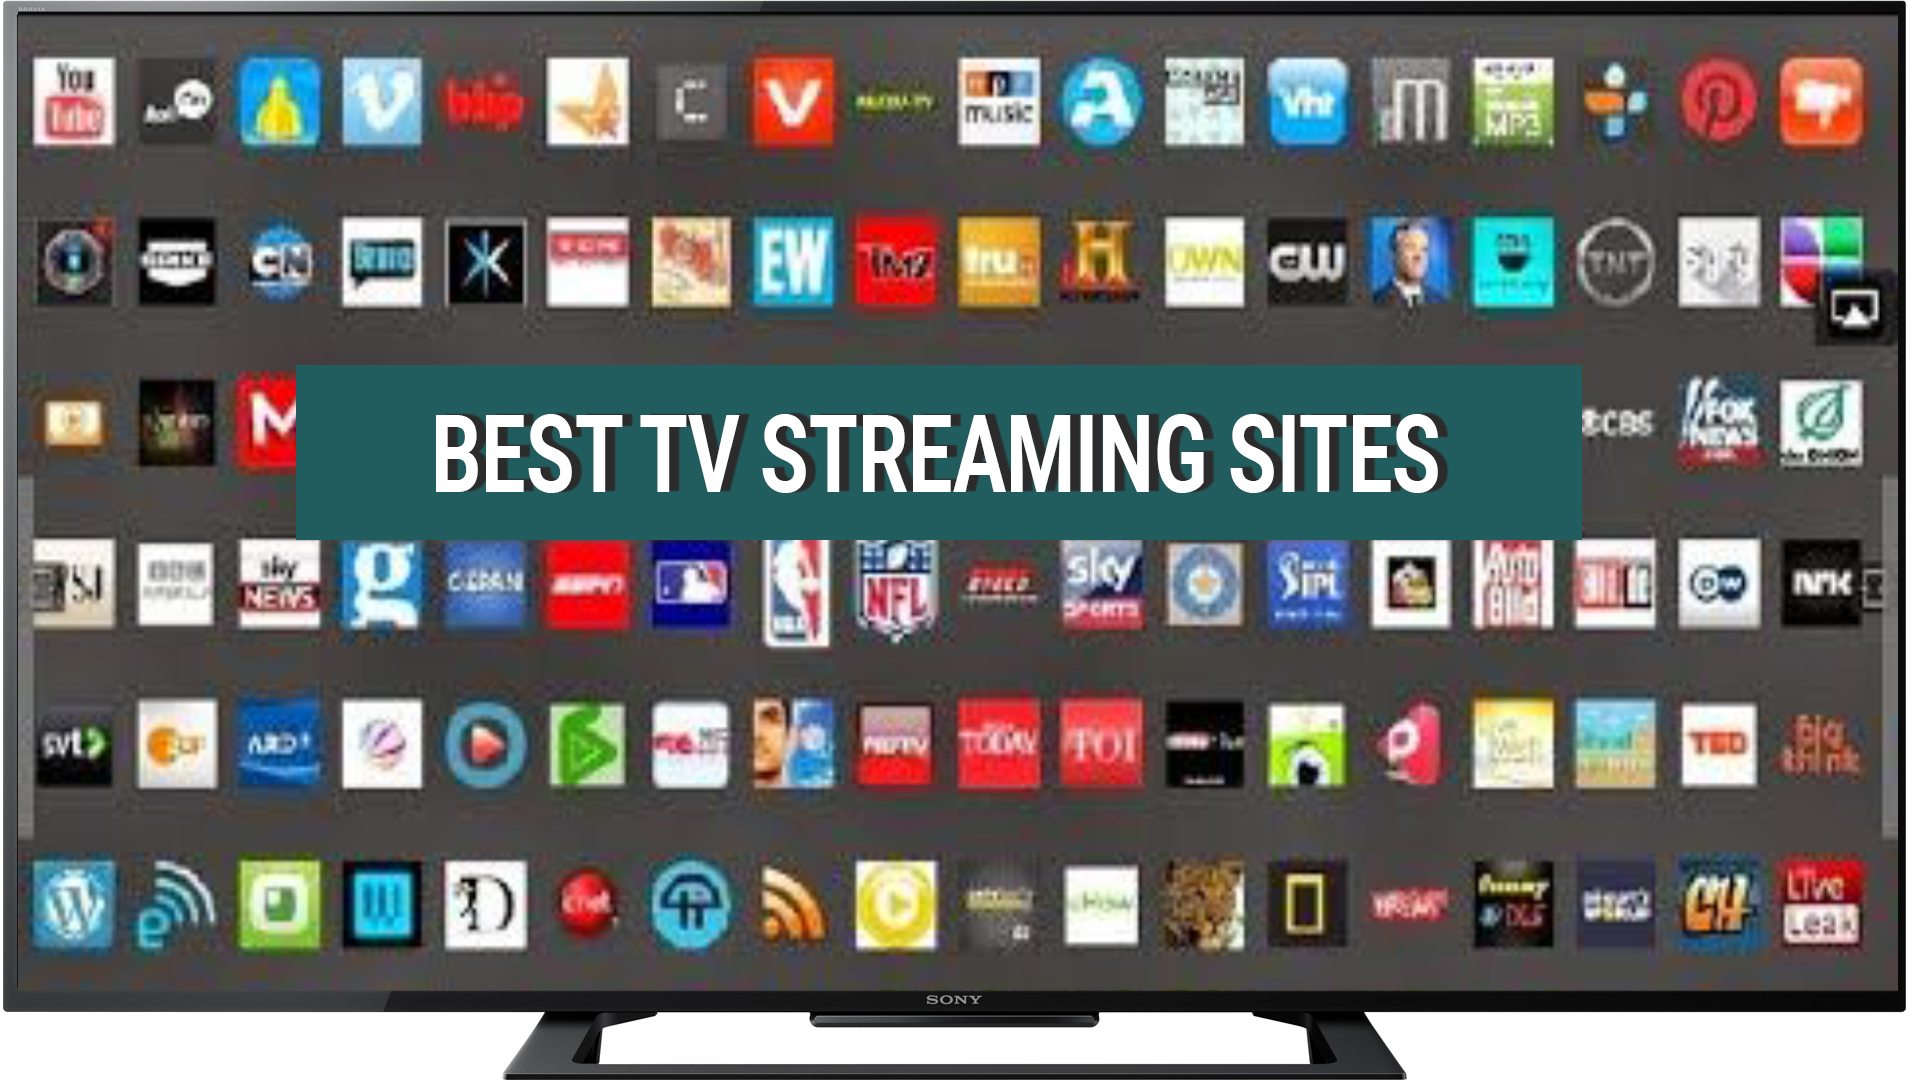 7 Best Live TV Streaming Sites 2019 - Watch Live TV for Free